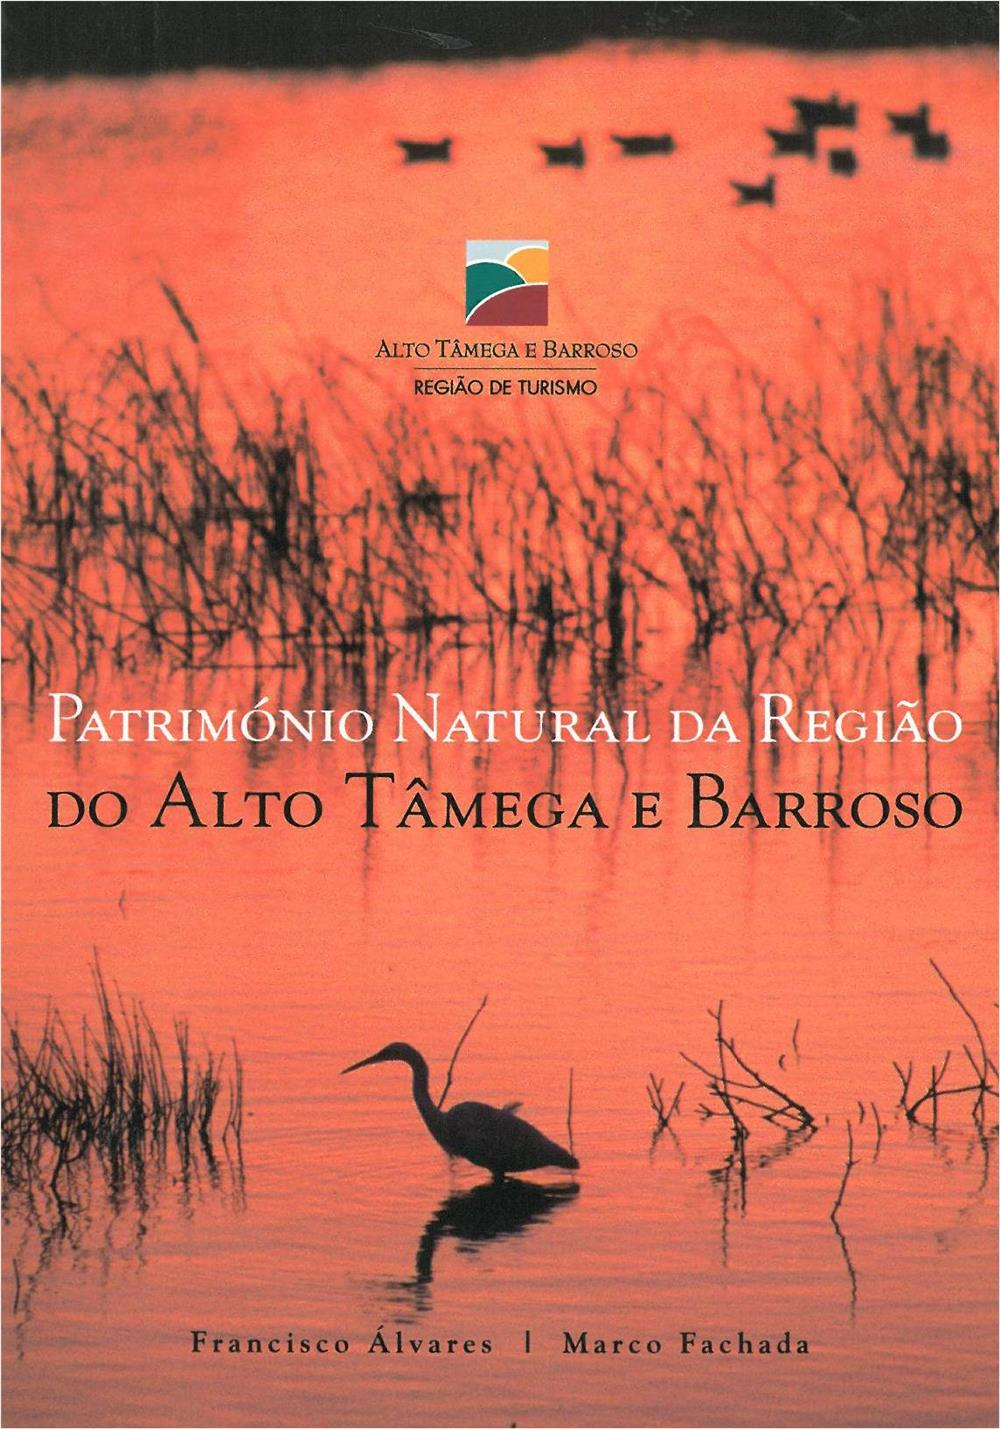 Do alto Tâmega e Barroso_.jpg